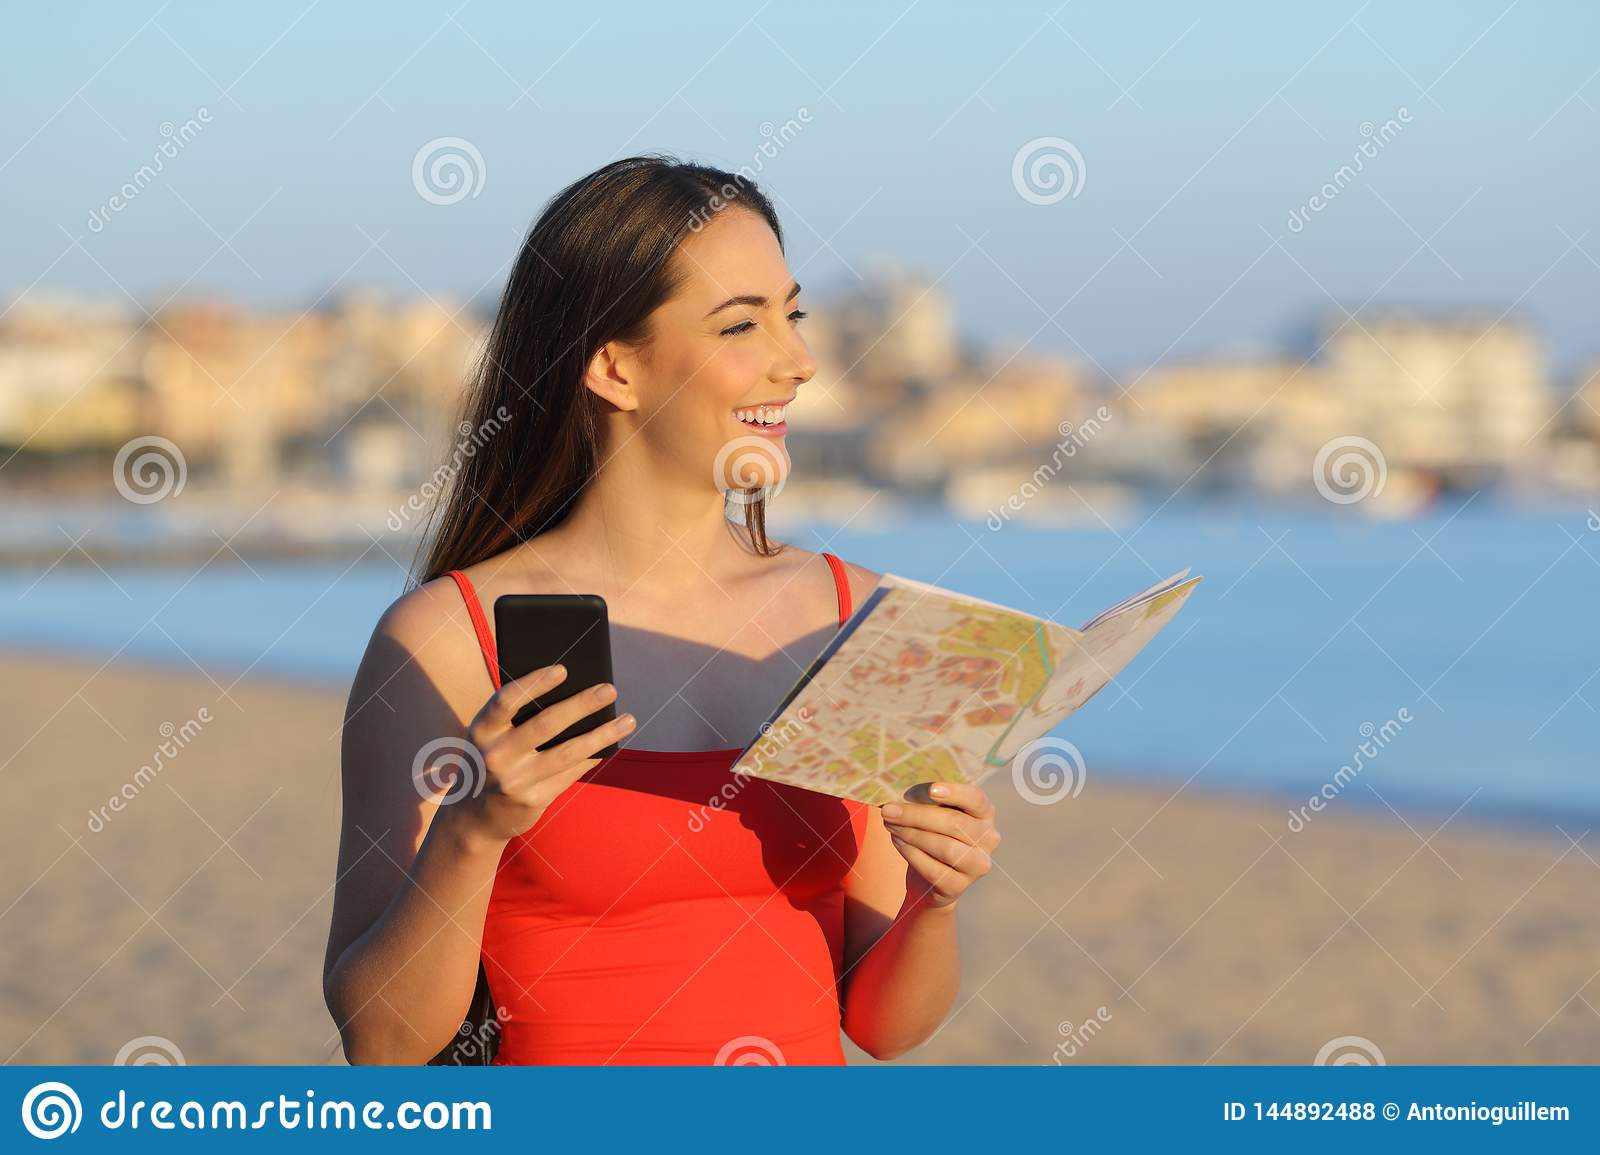 Happy tourist holding map and phone contemplating the beach